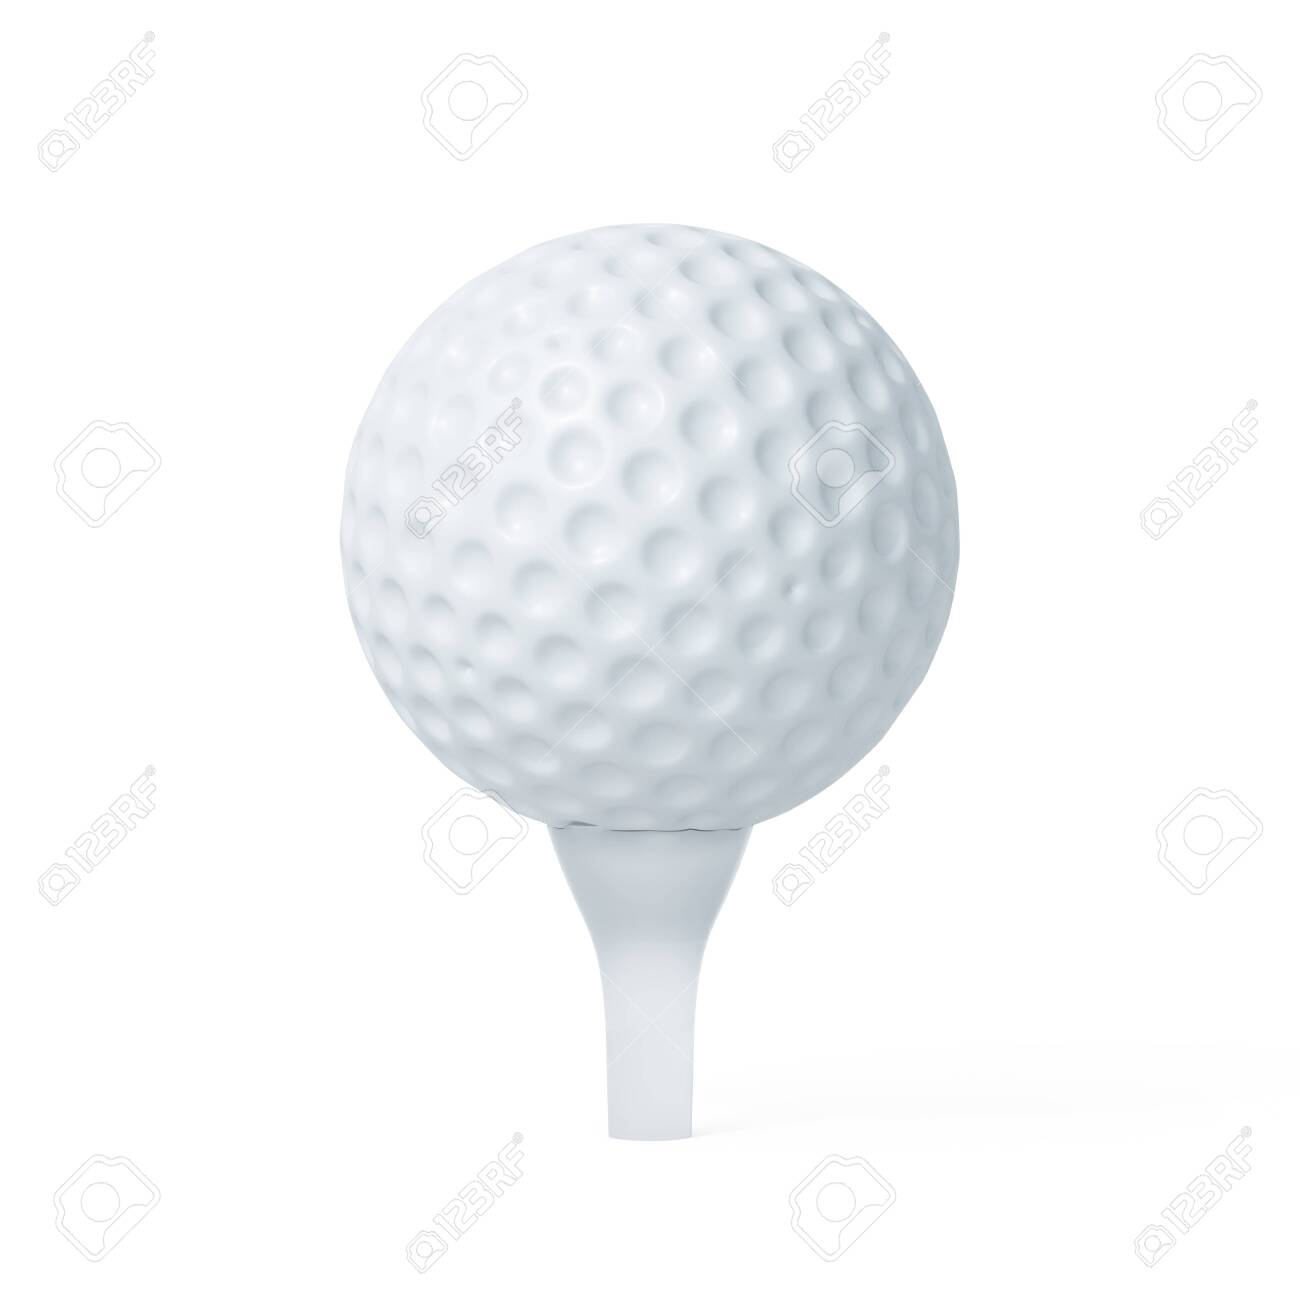 Golf ball on tee ready to be shot. Soft focus 3d renderin illustration isolated on white background - 127060901